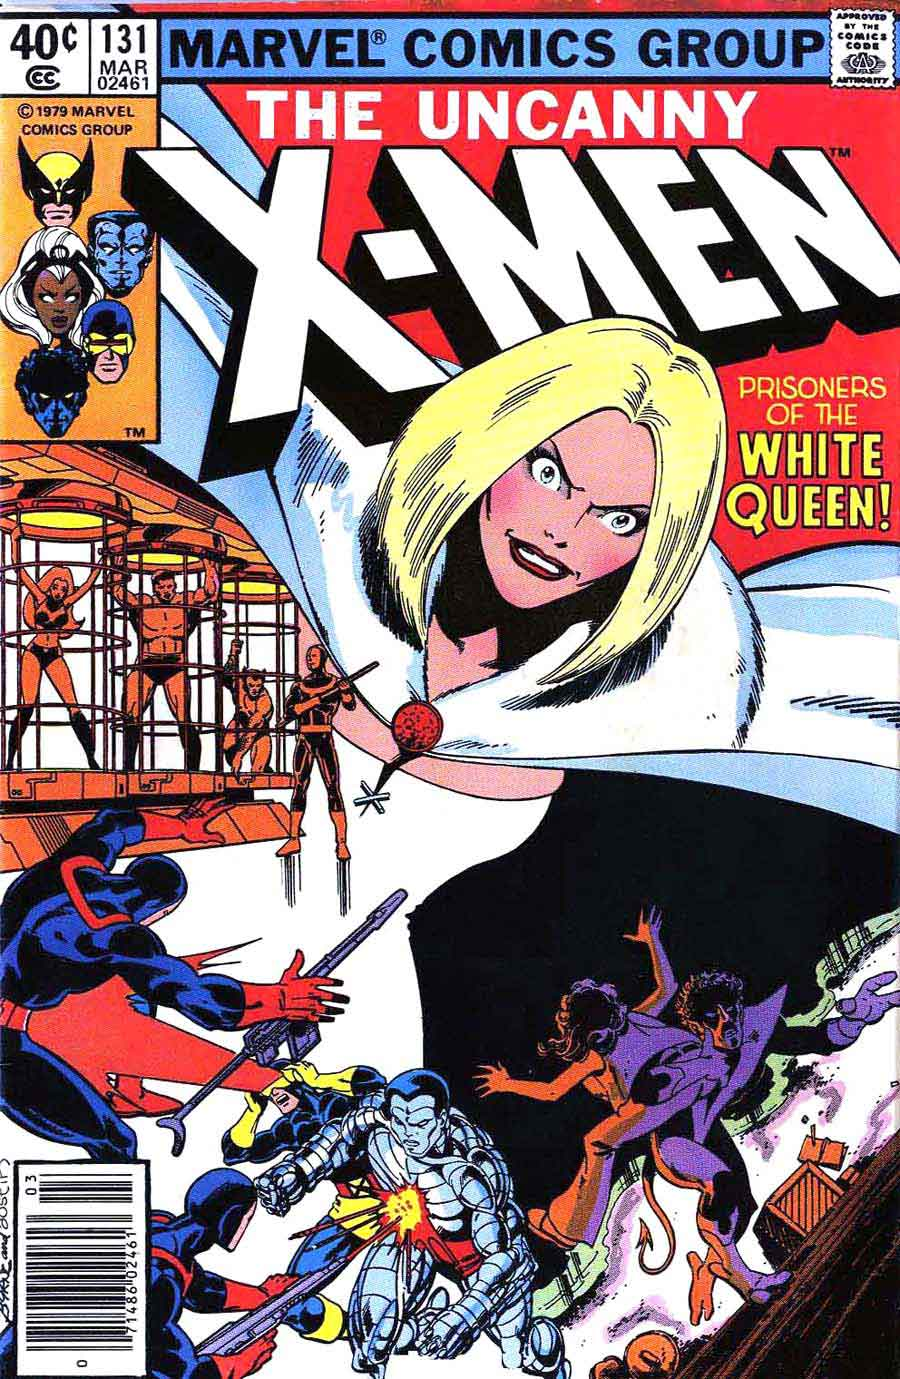 X-men v1 #131 marvel comic book cover art by John Byrne